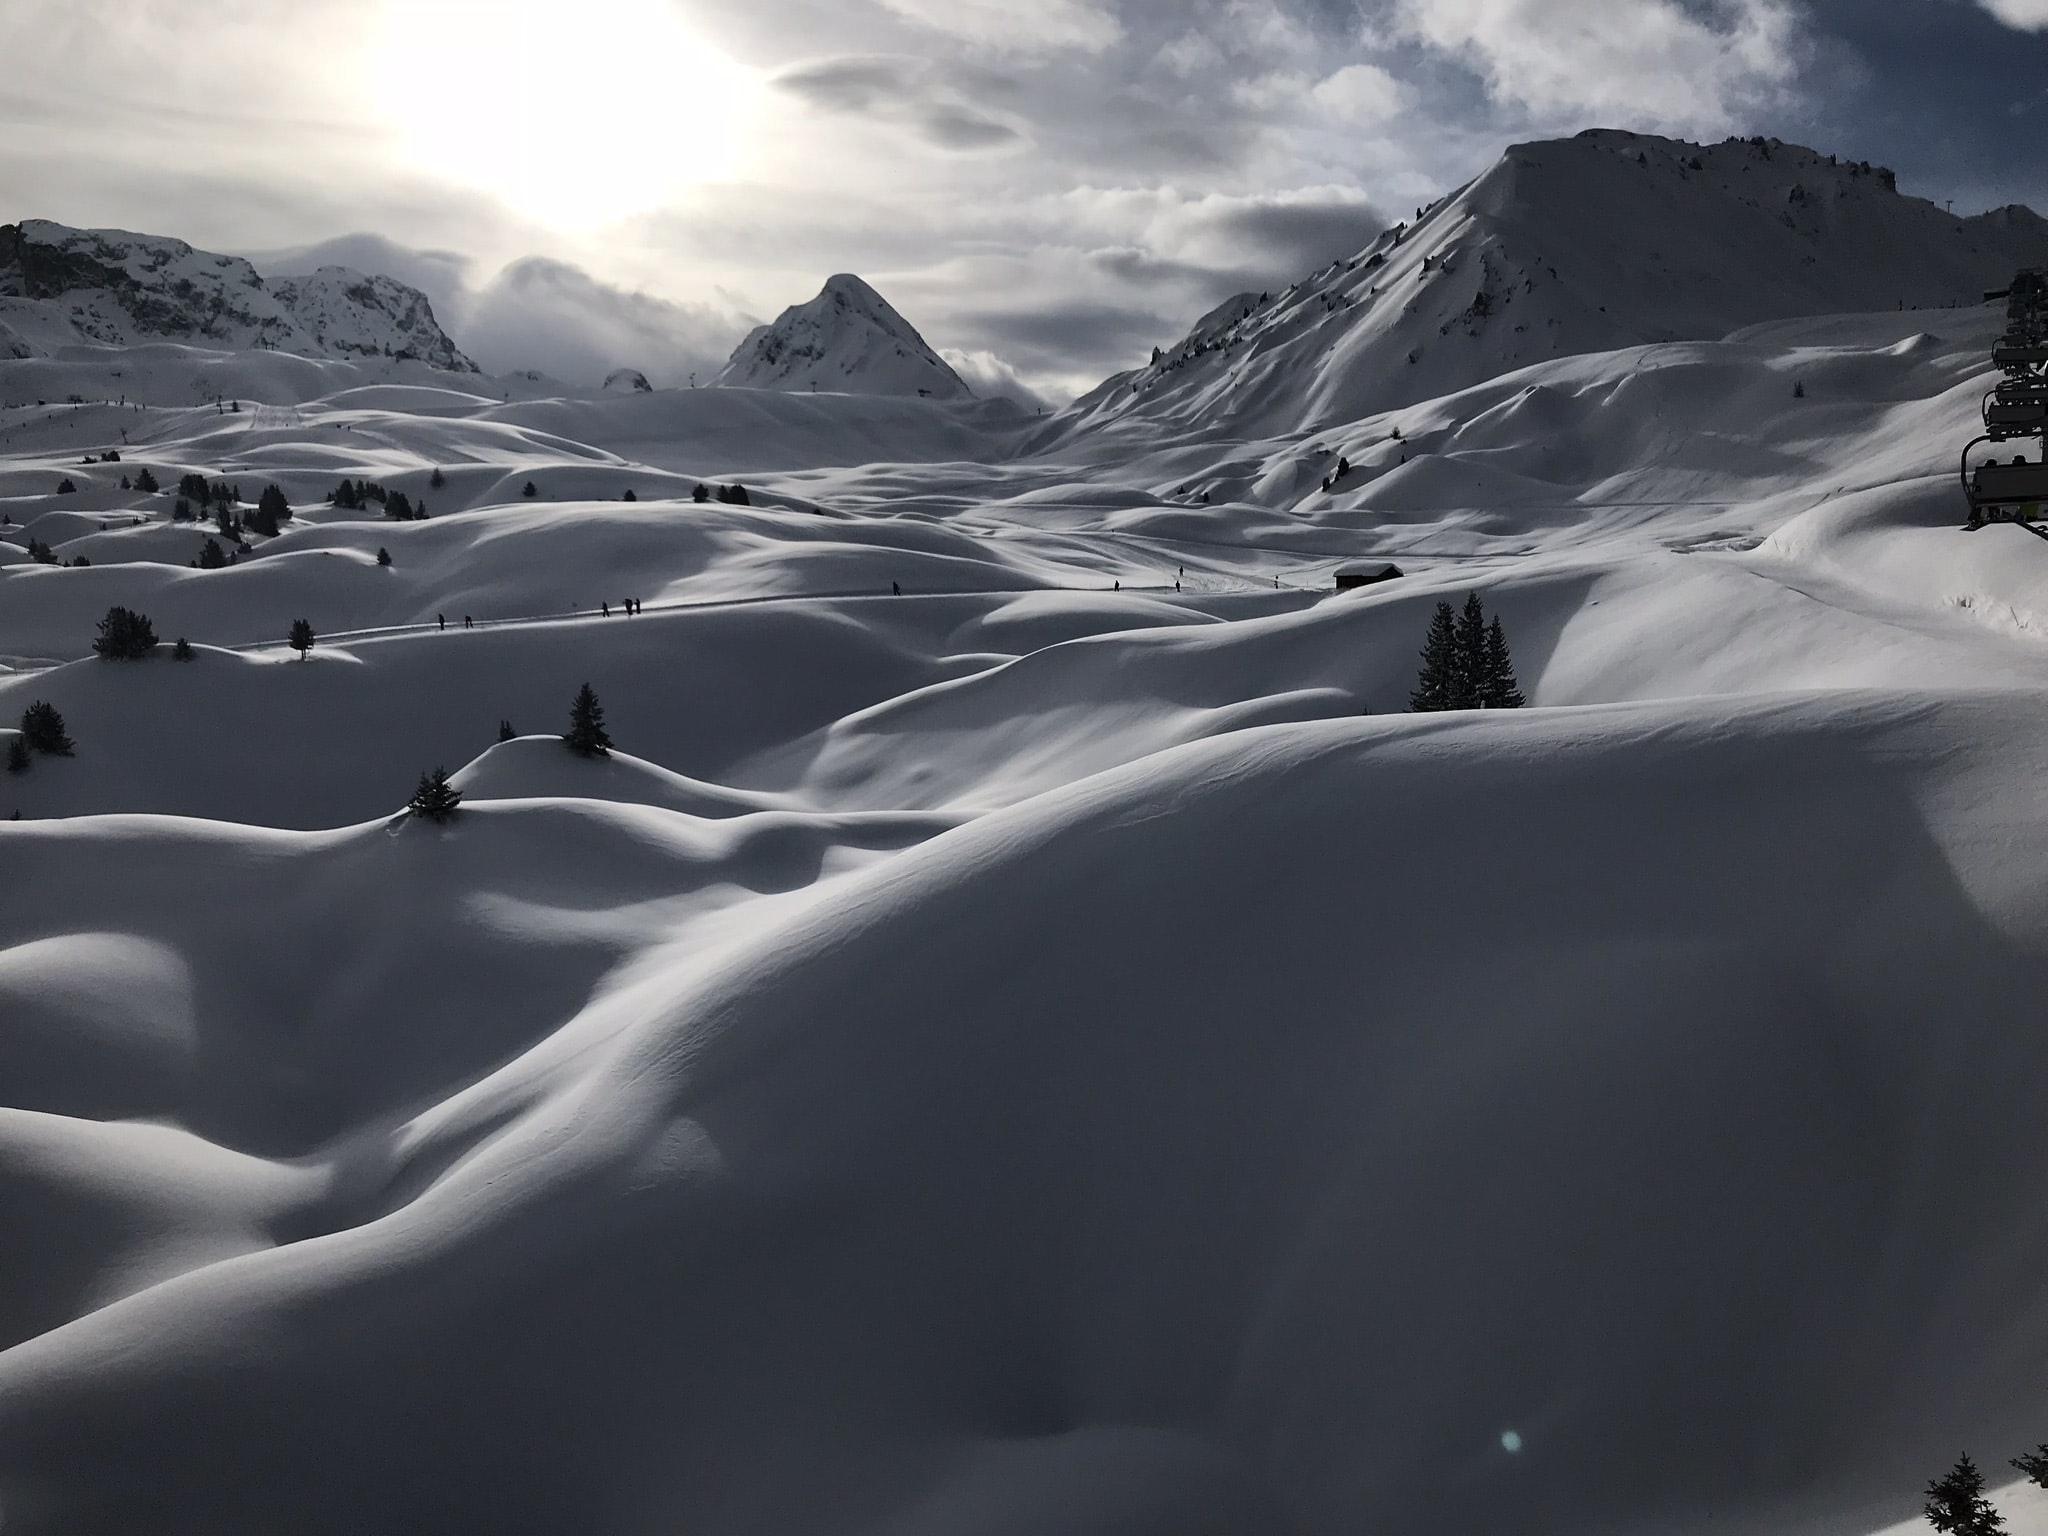 white snow and mountains at daytime